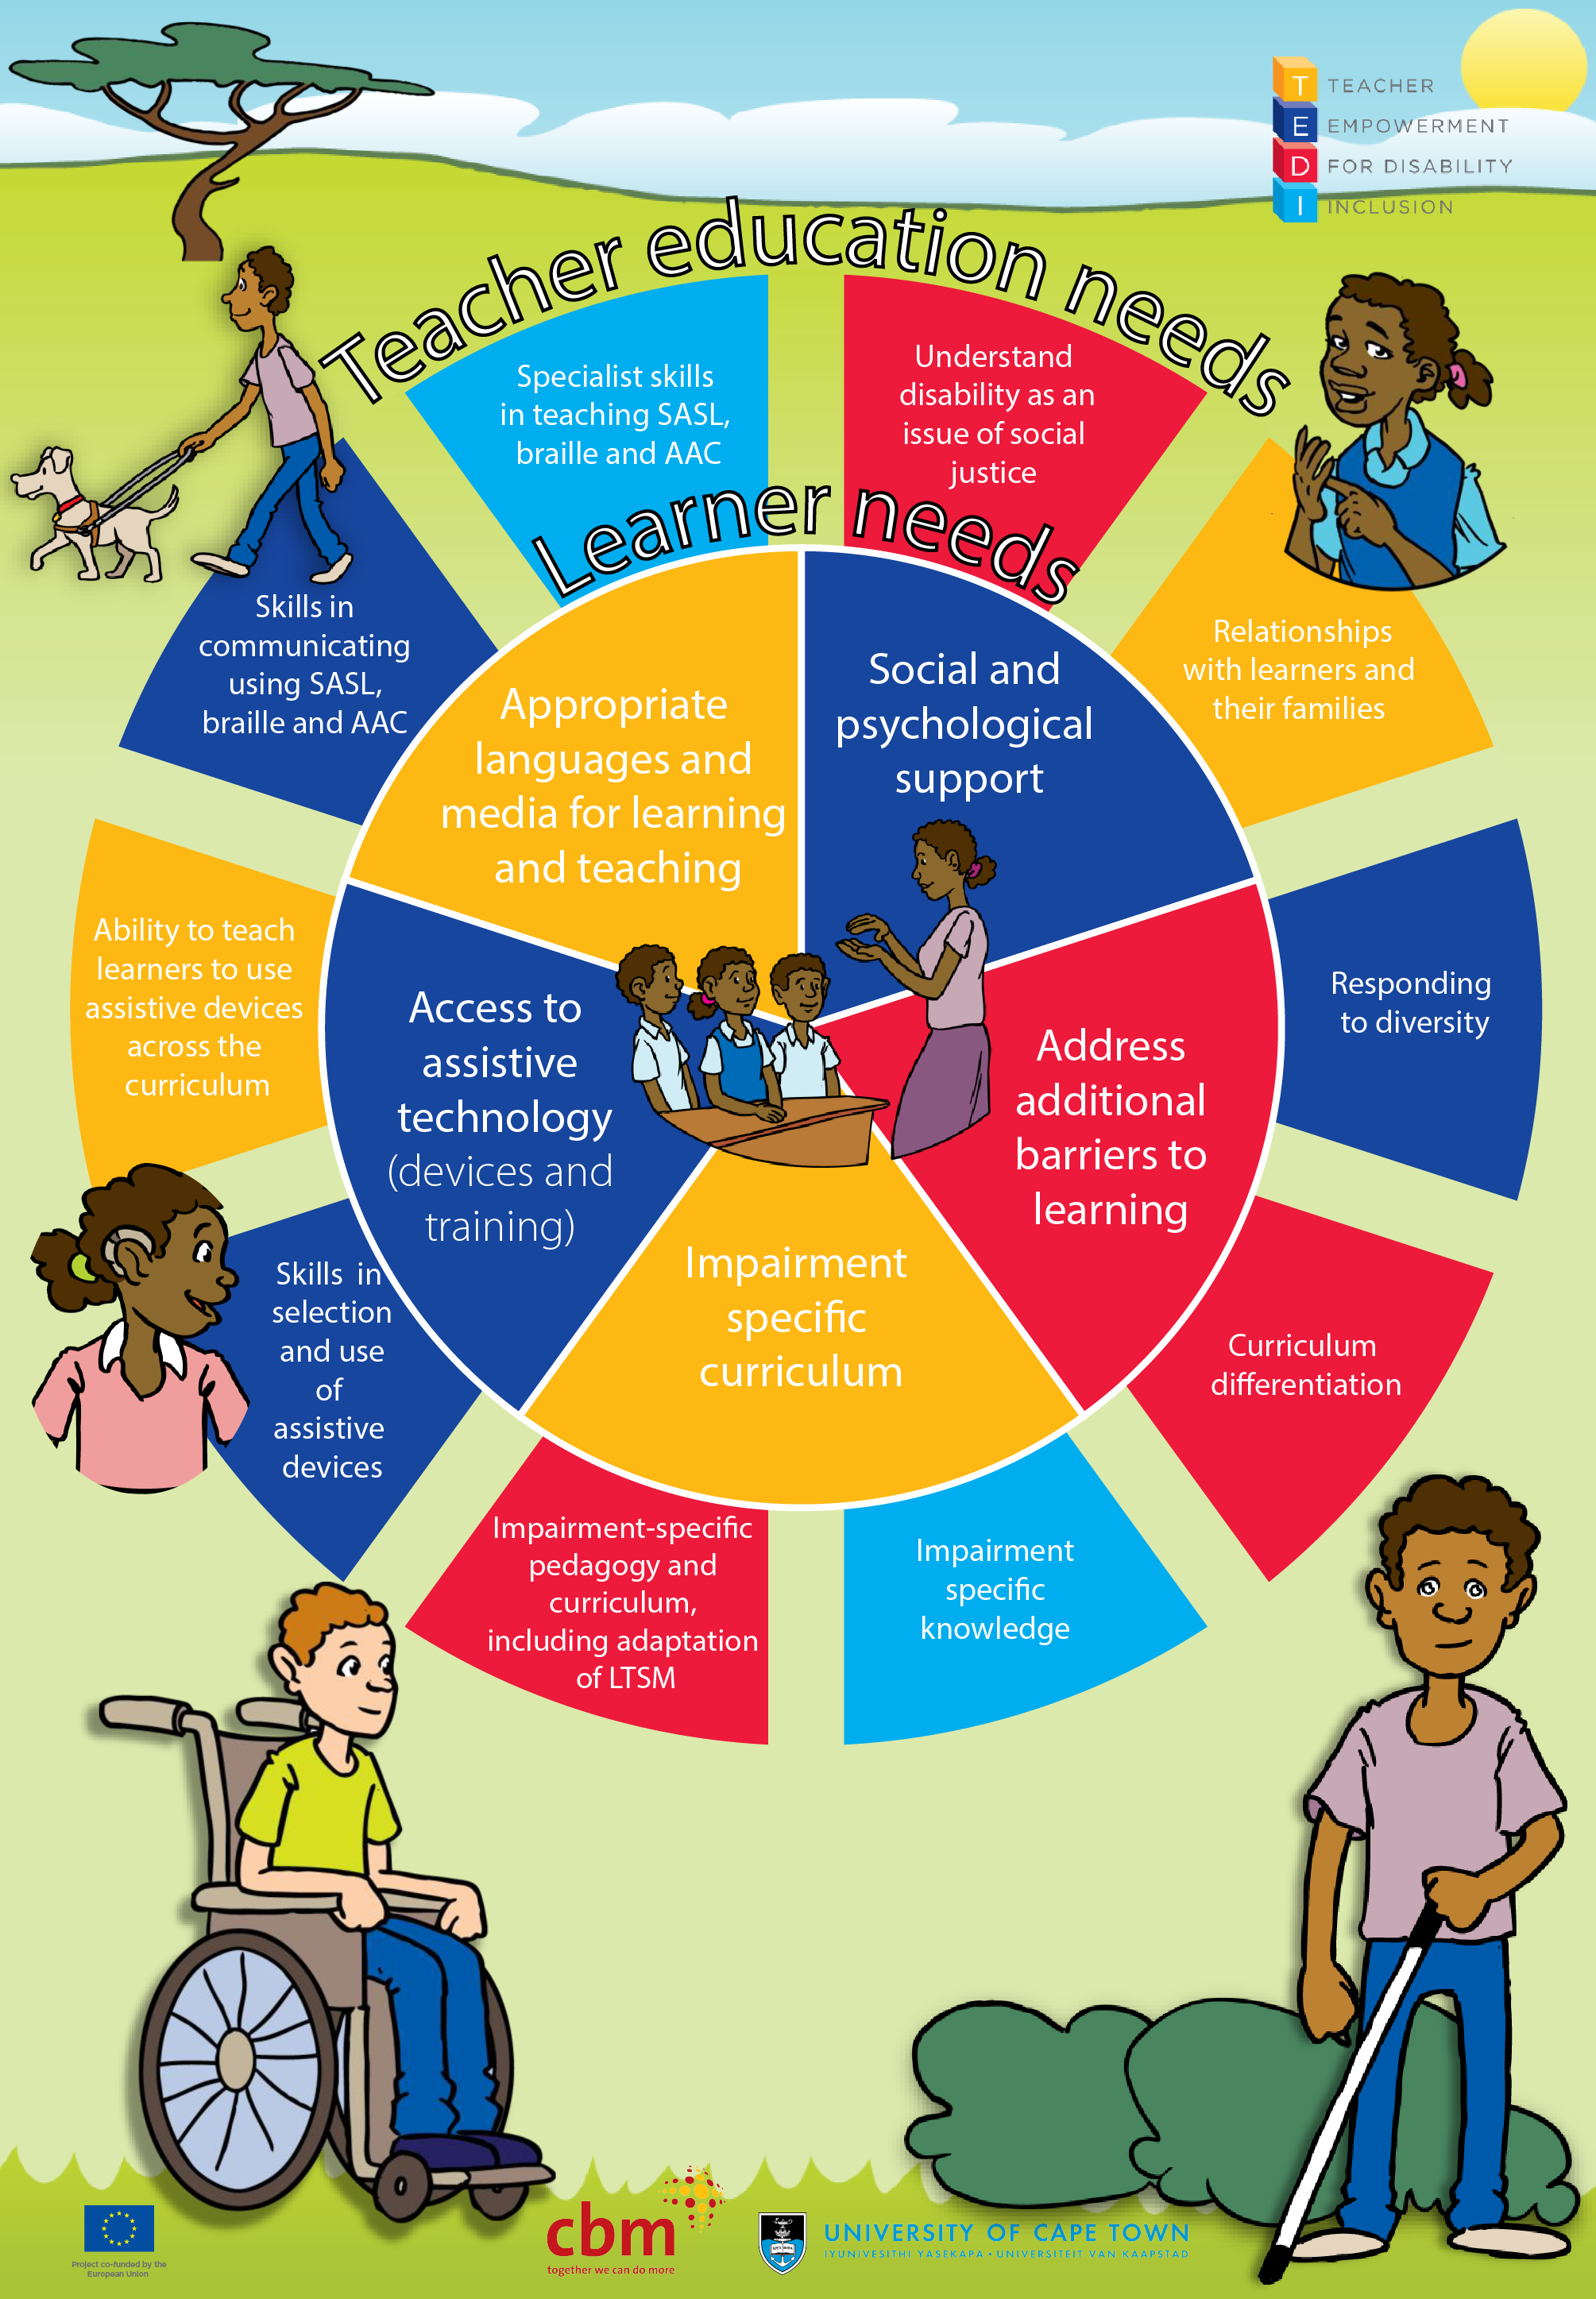 The Teacher Empowerment for Disability Inclusion (TEDI) project